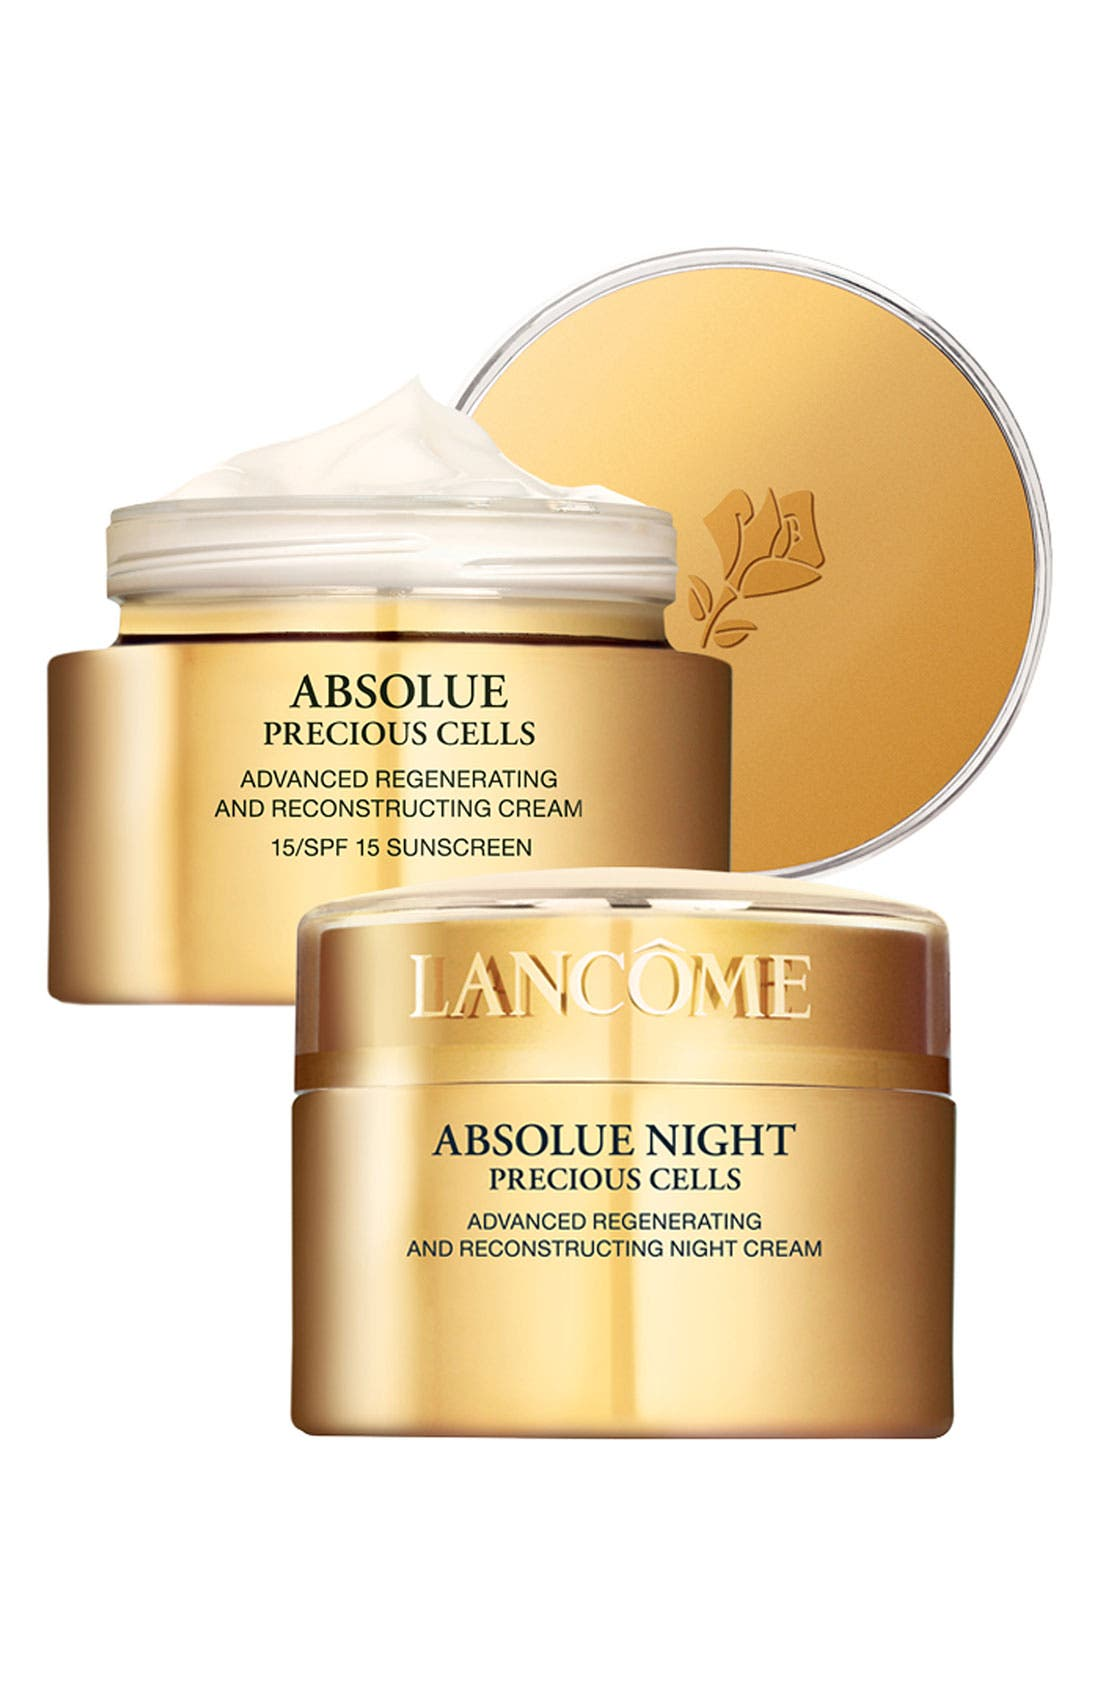 Alternate Image 1 Selected - Lancôme 'Absolue Precious Cells' Cream Duo ($340 Value)